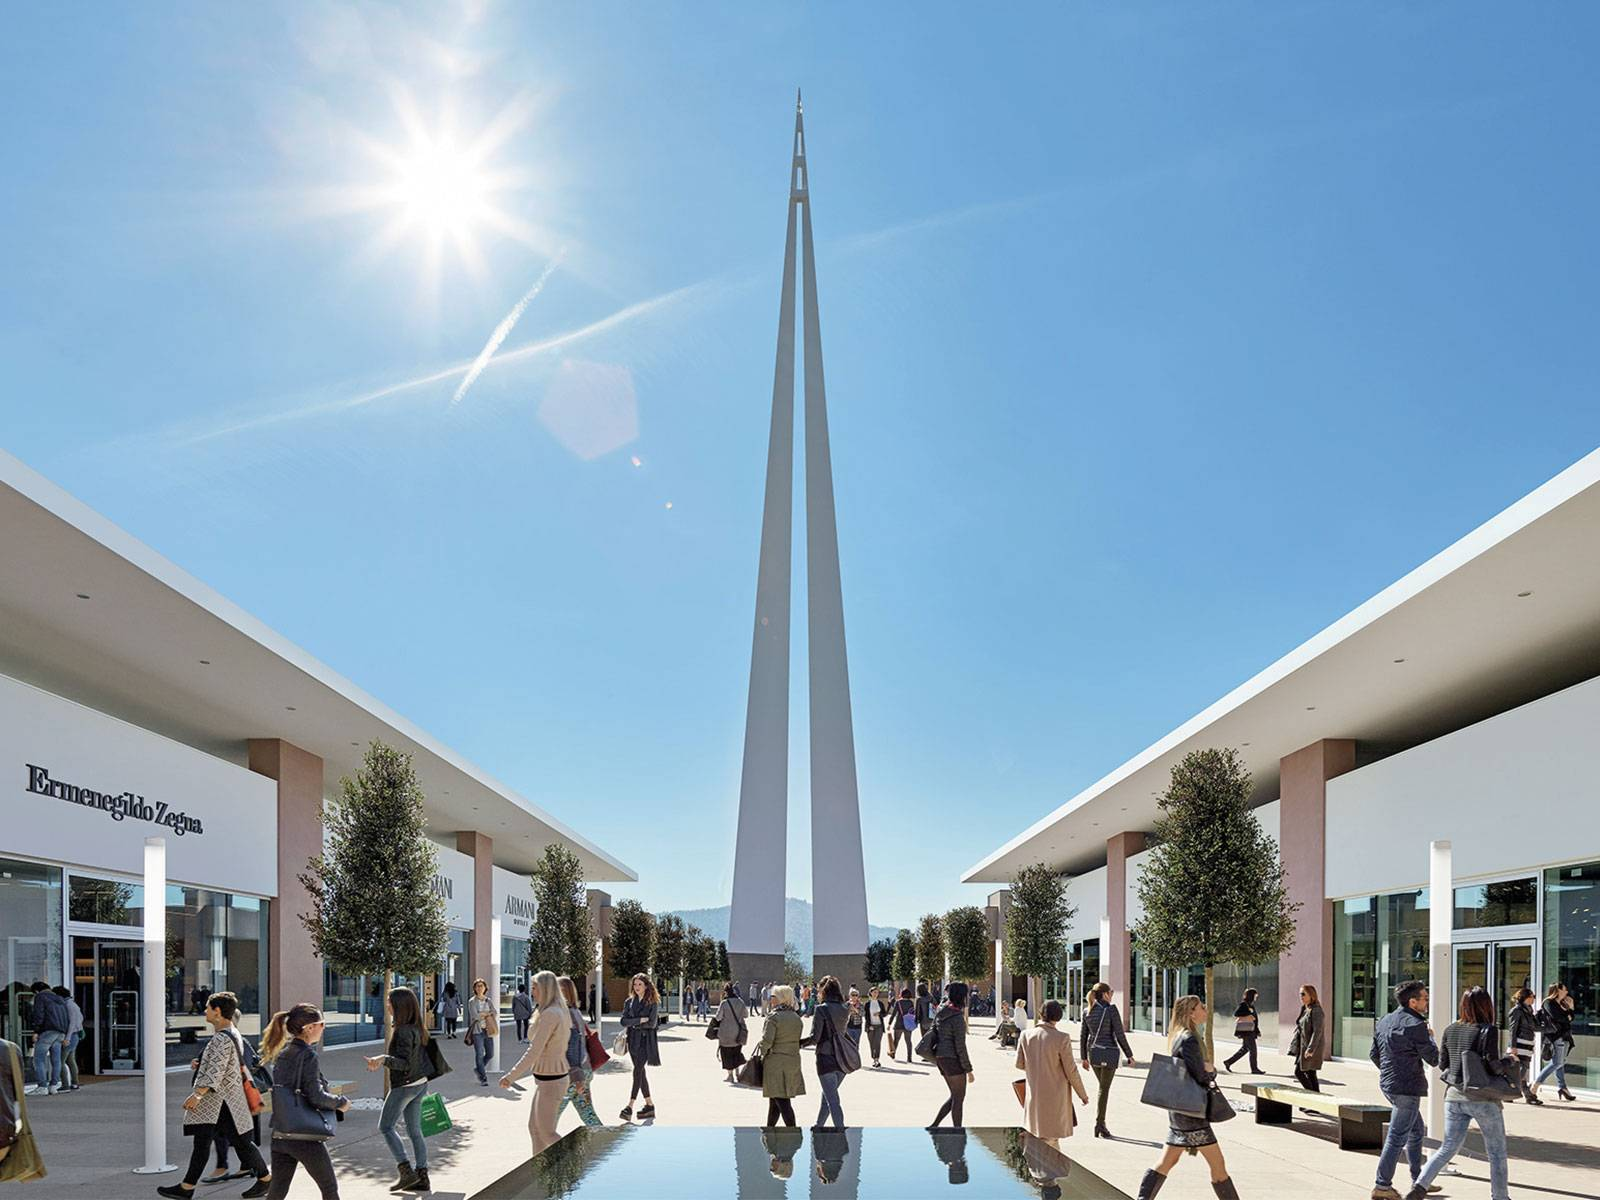 Luxury Outlet Shopping at Torino Village, Italy - GVA Excursions